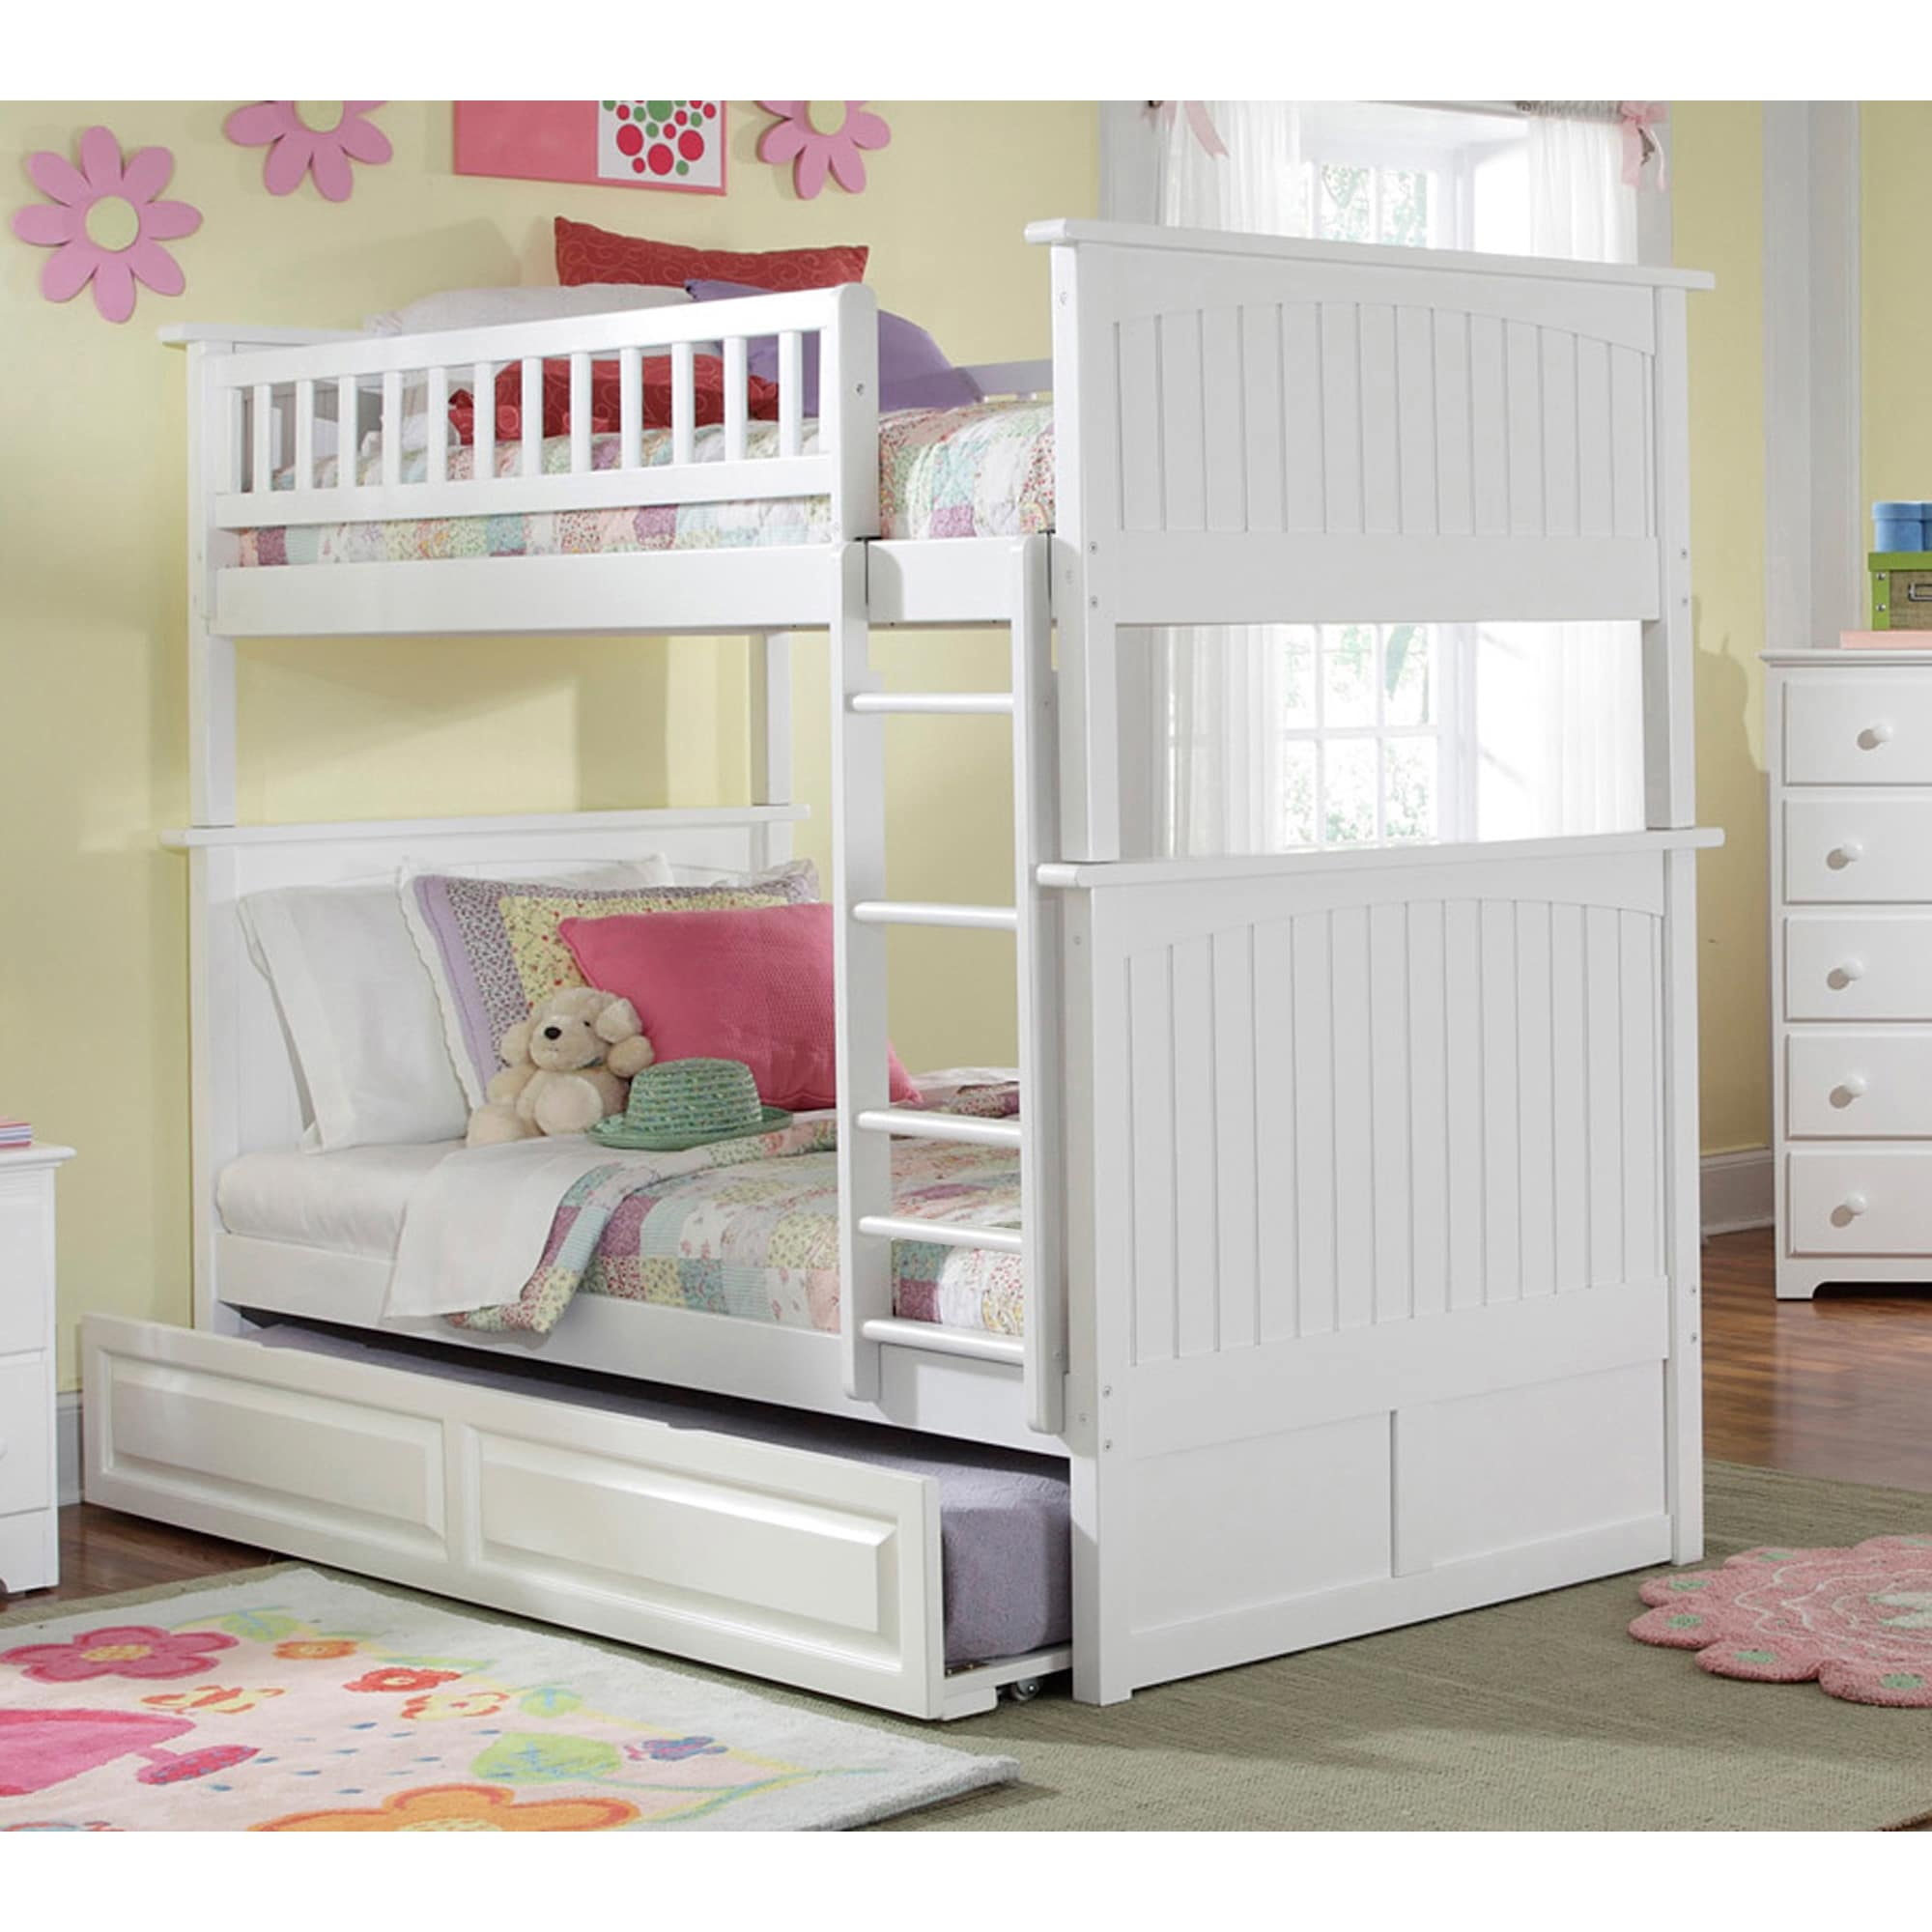 Atlantic Furniture Nantucket Bunk Bed Twin over Twin with...